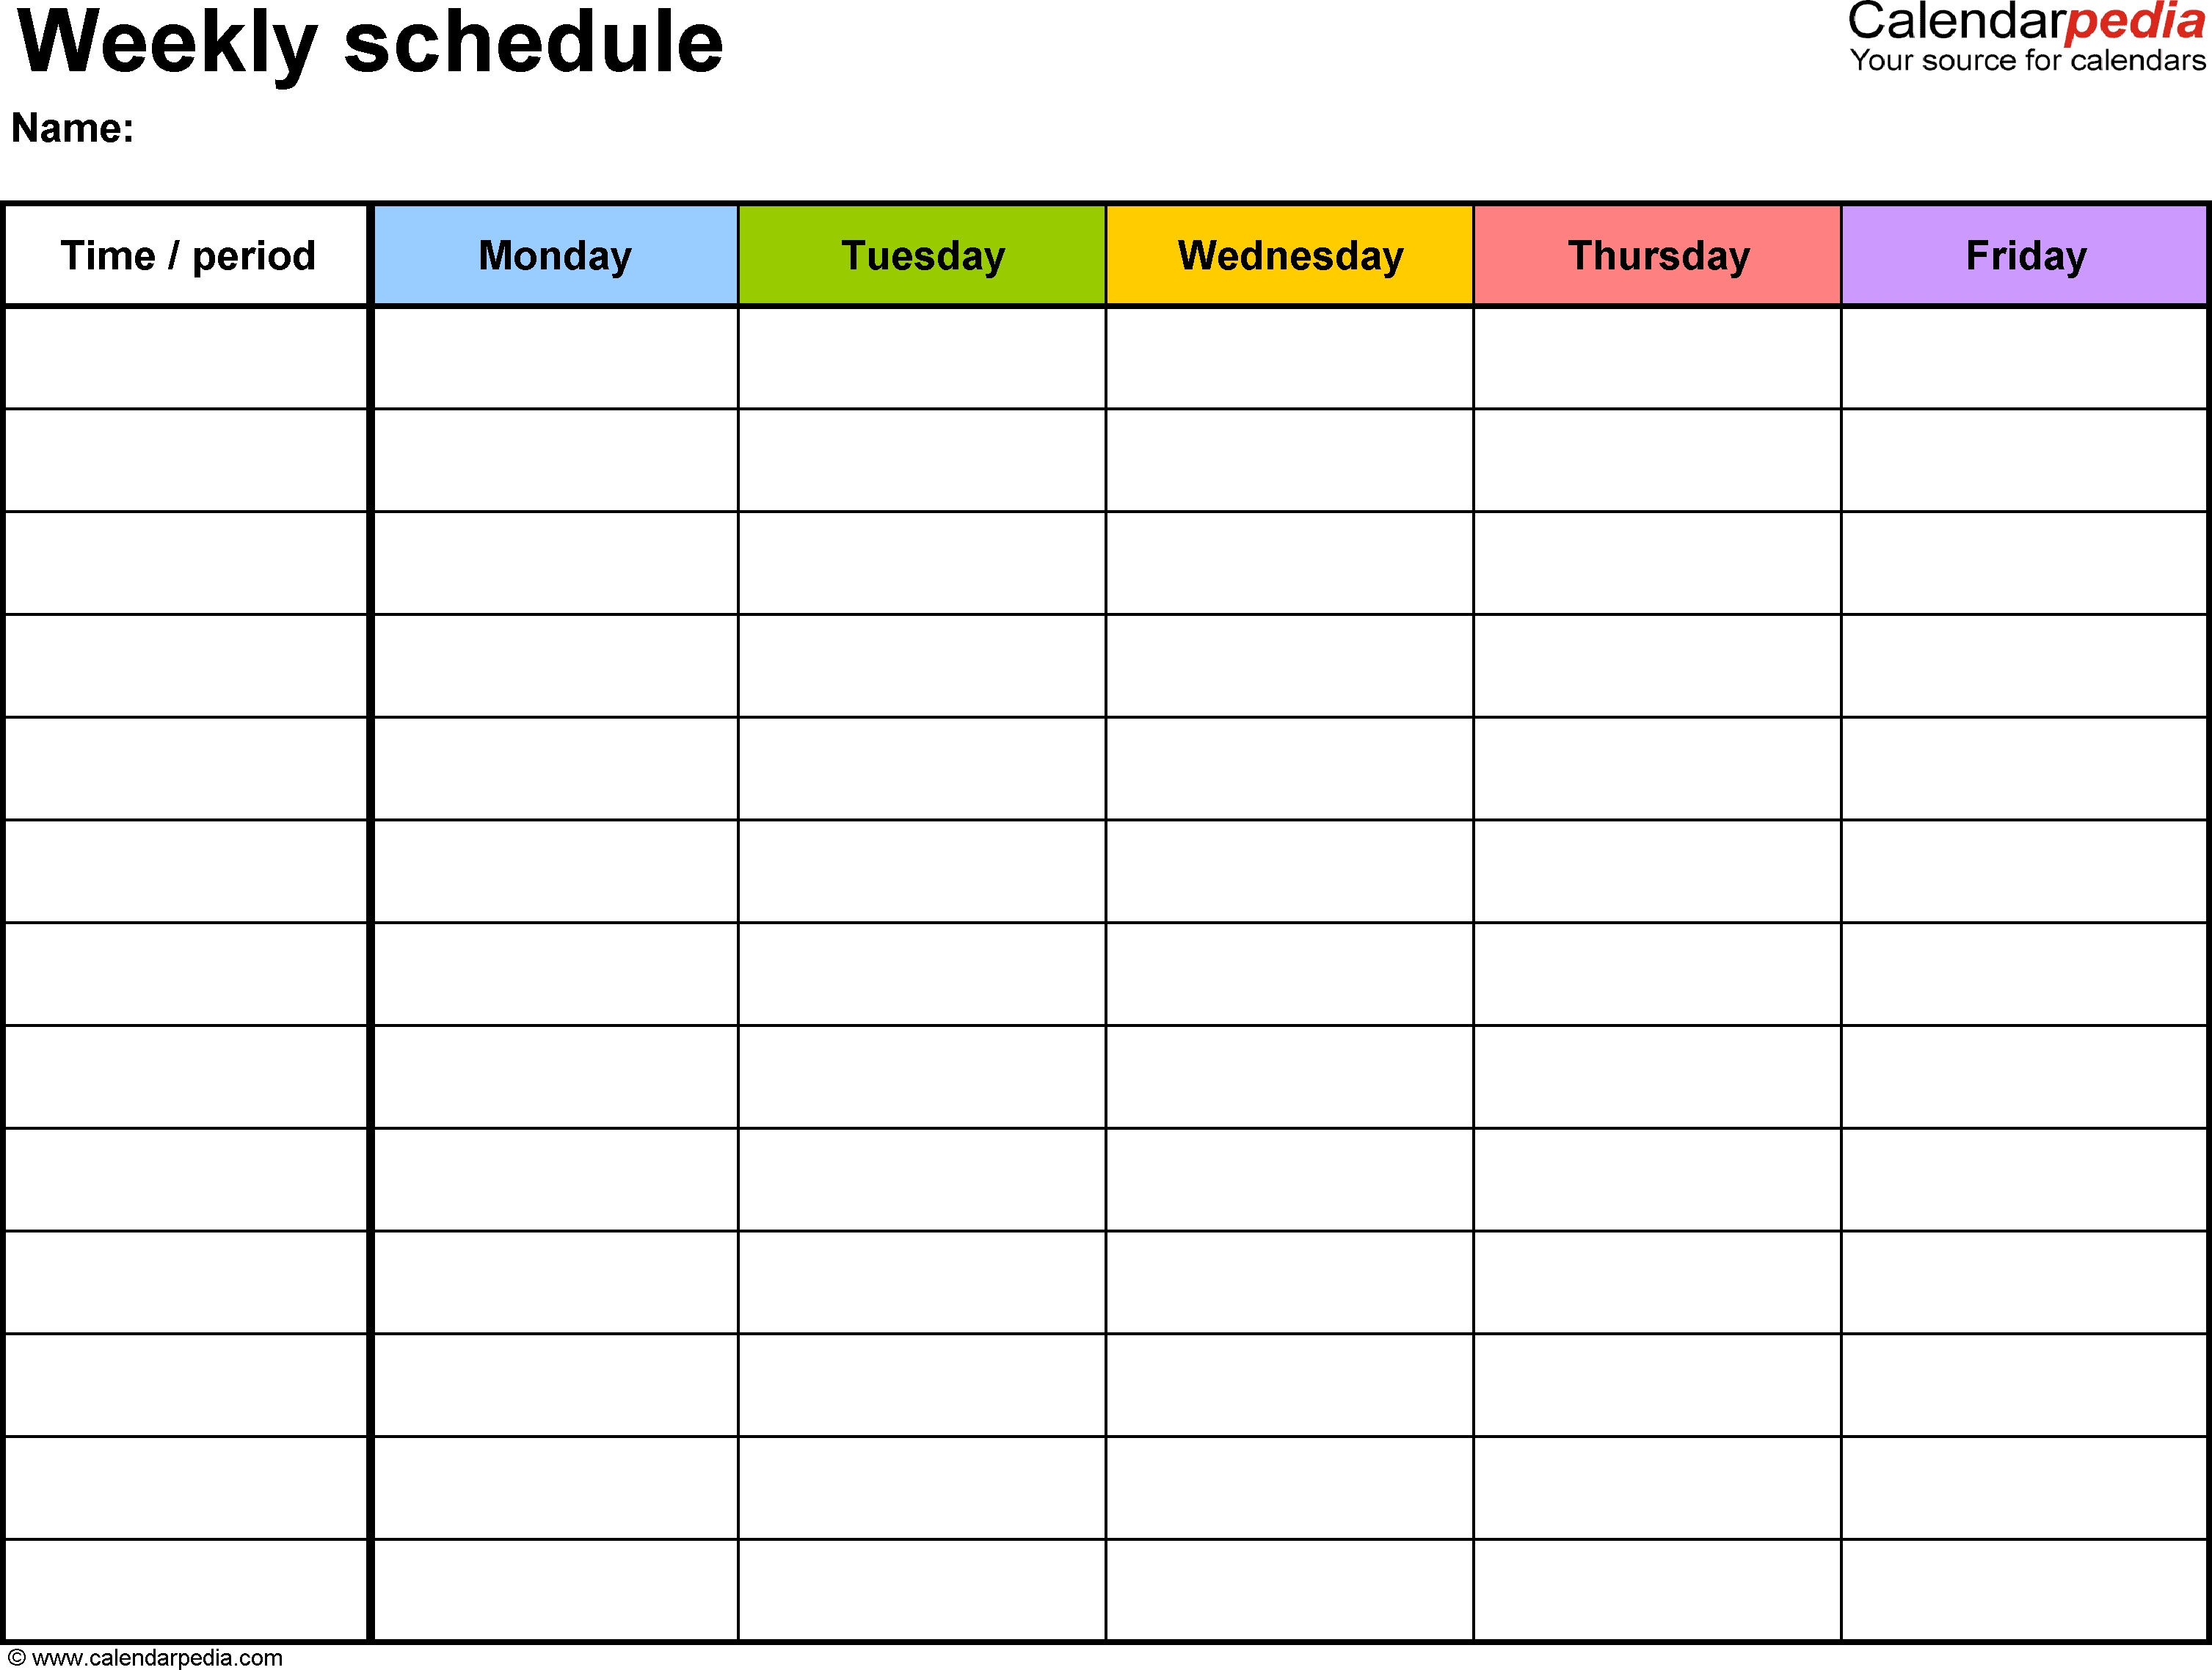 Free Weekly Schedule Templates For Excel - 18 Templates for 5 Day Weekly Planner Template Excel